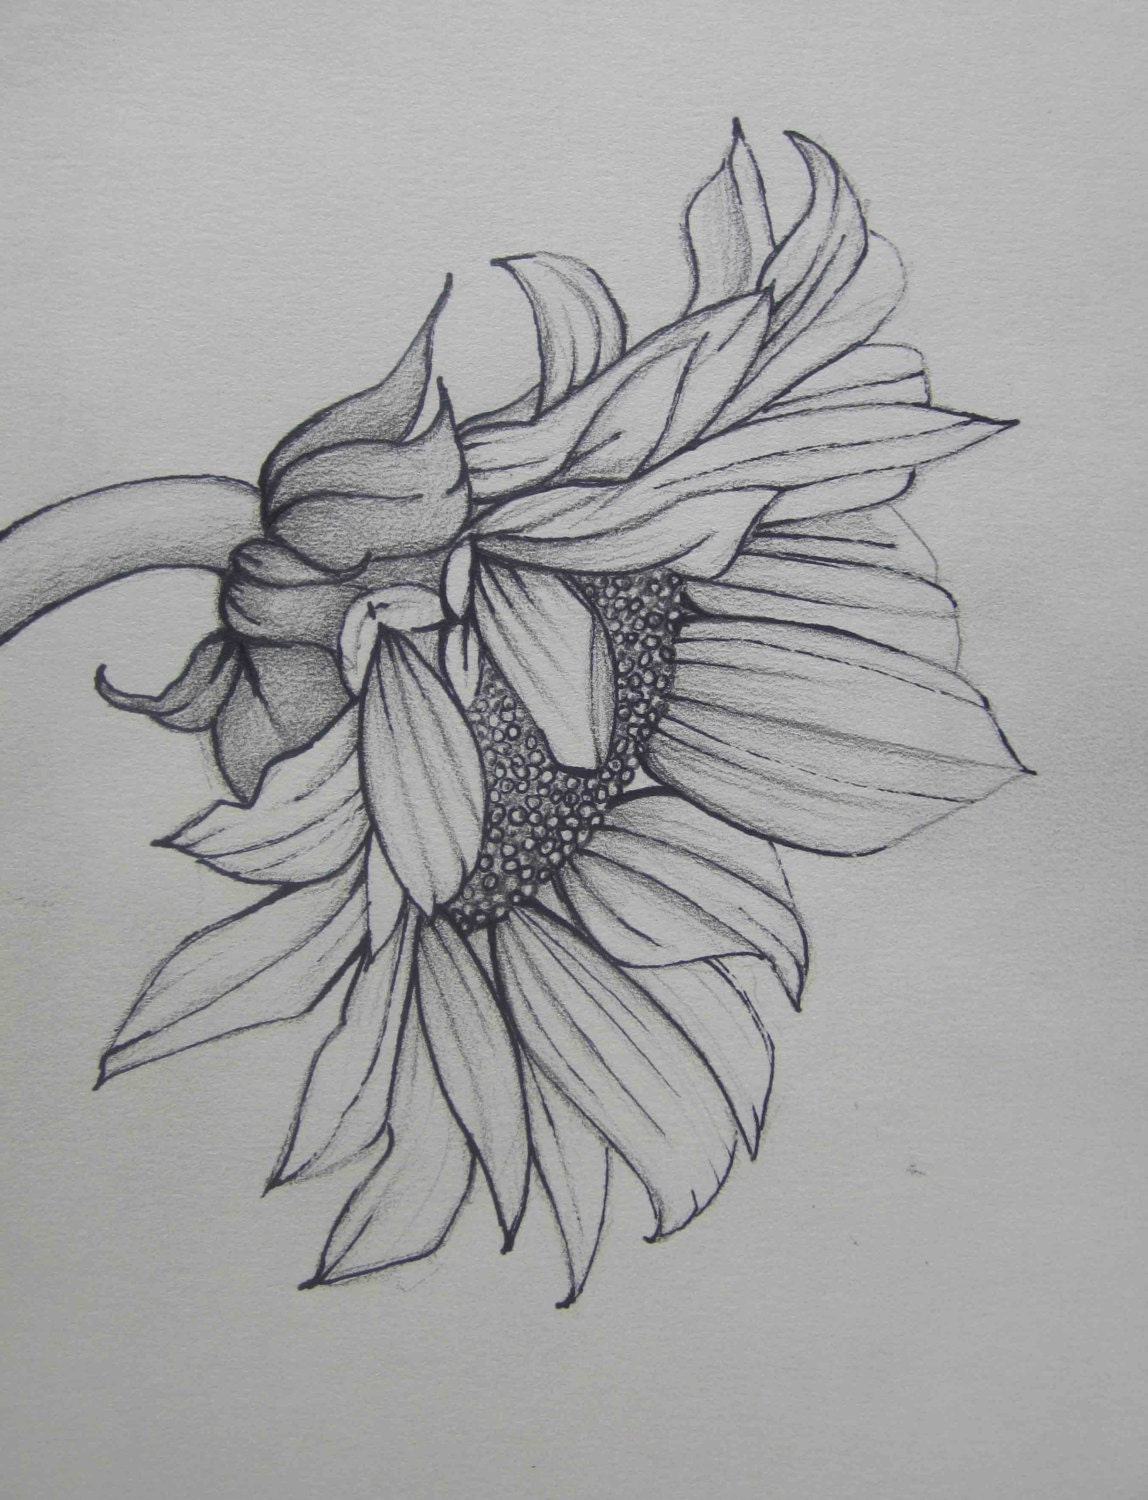 Drawings Of Sunflowers In Pencil Pencil Drawings: Penci...